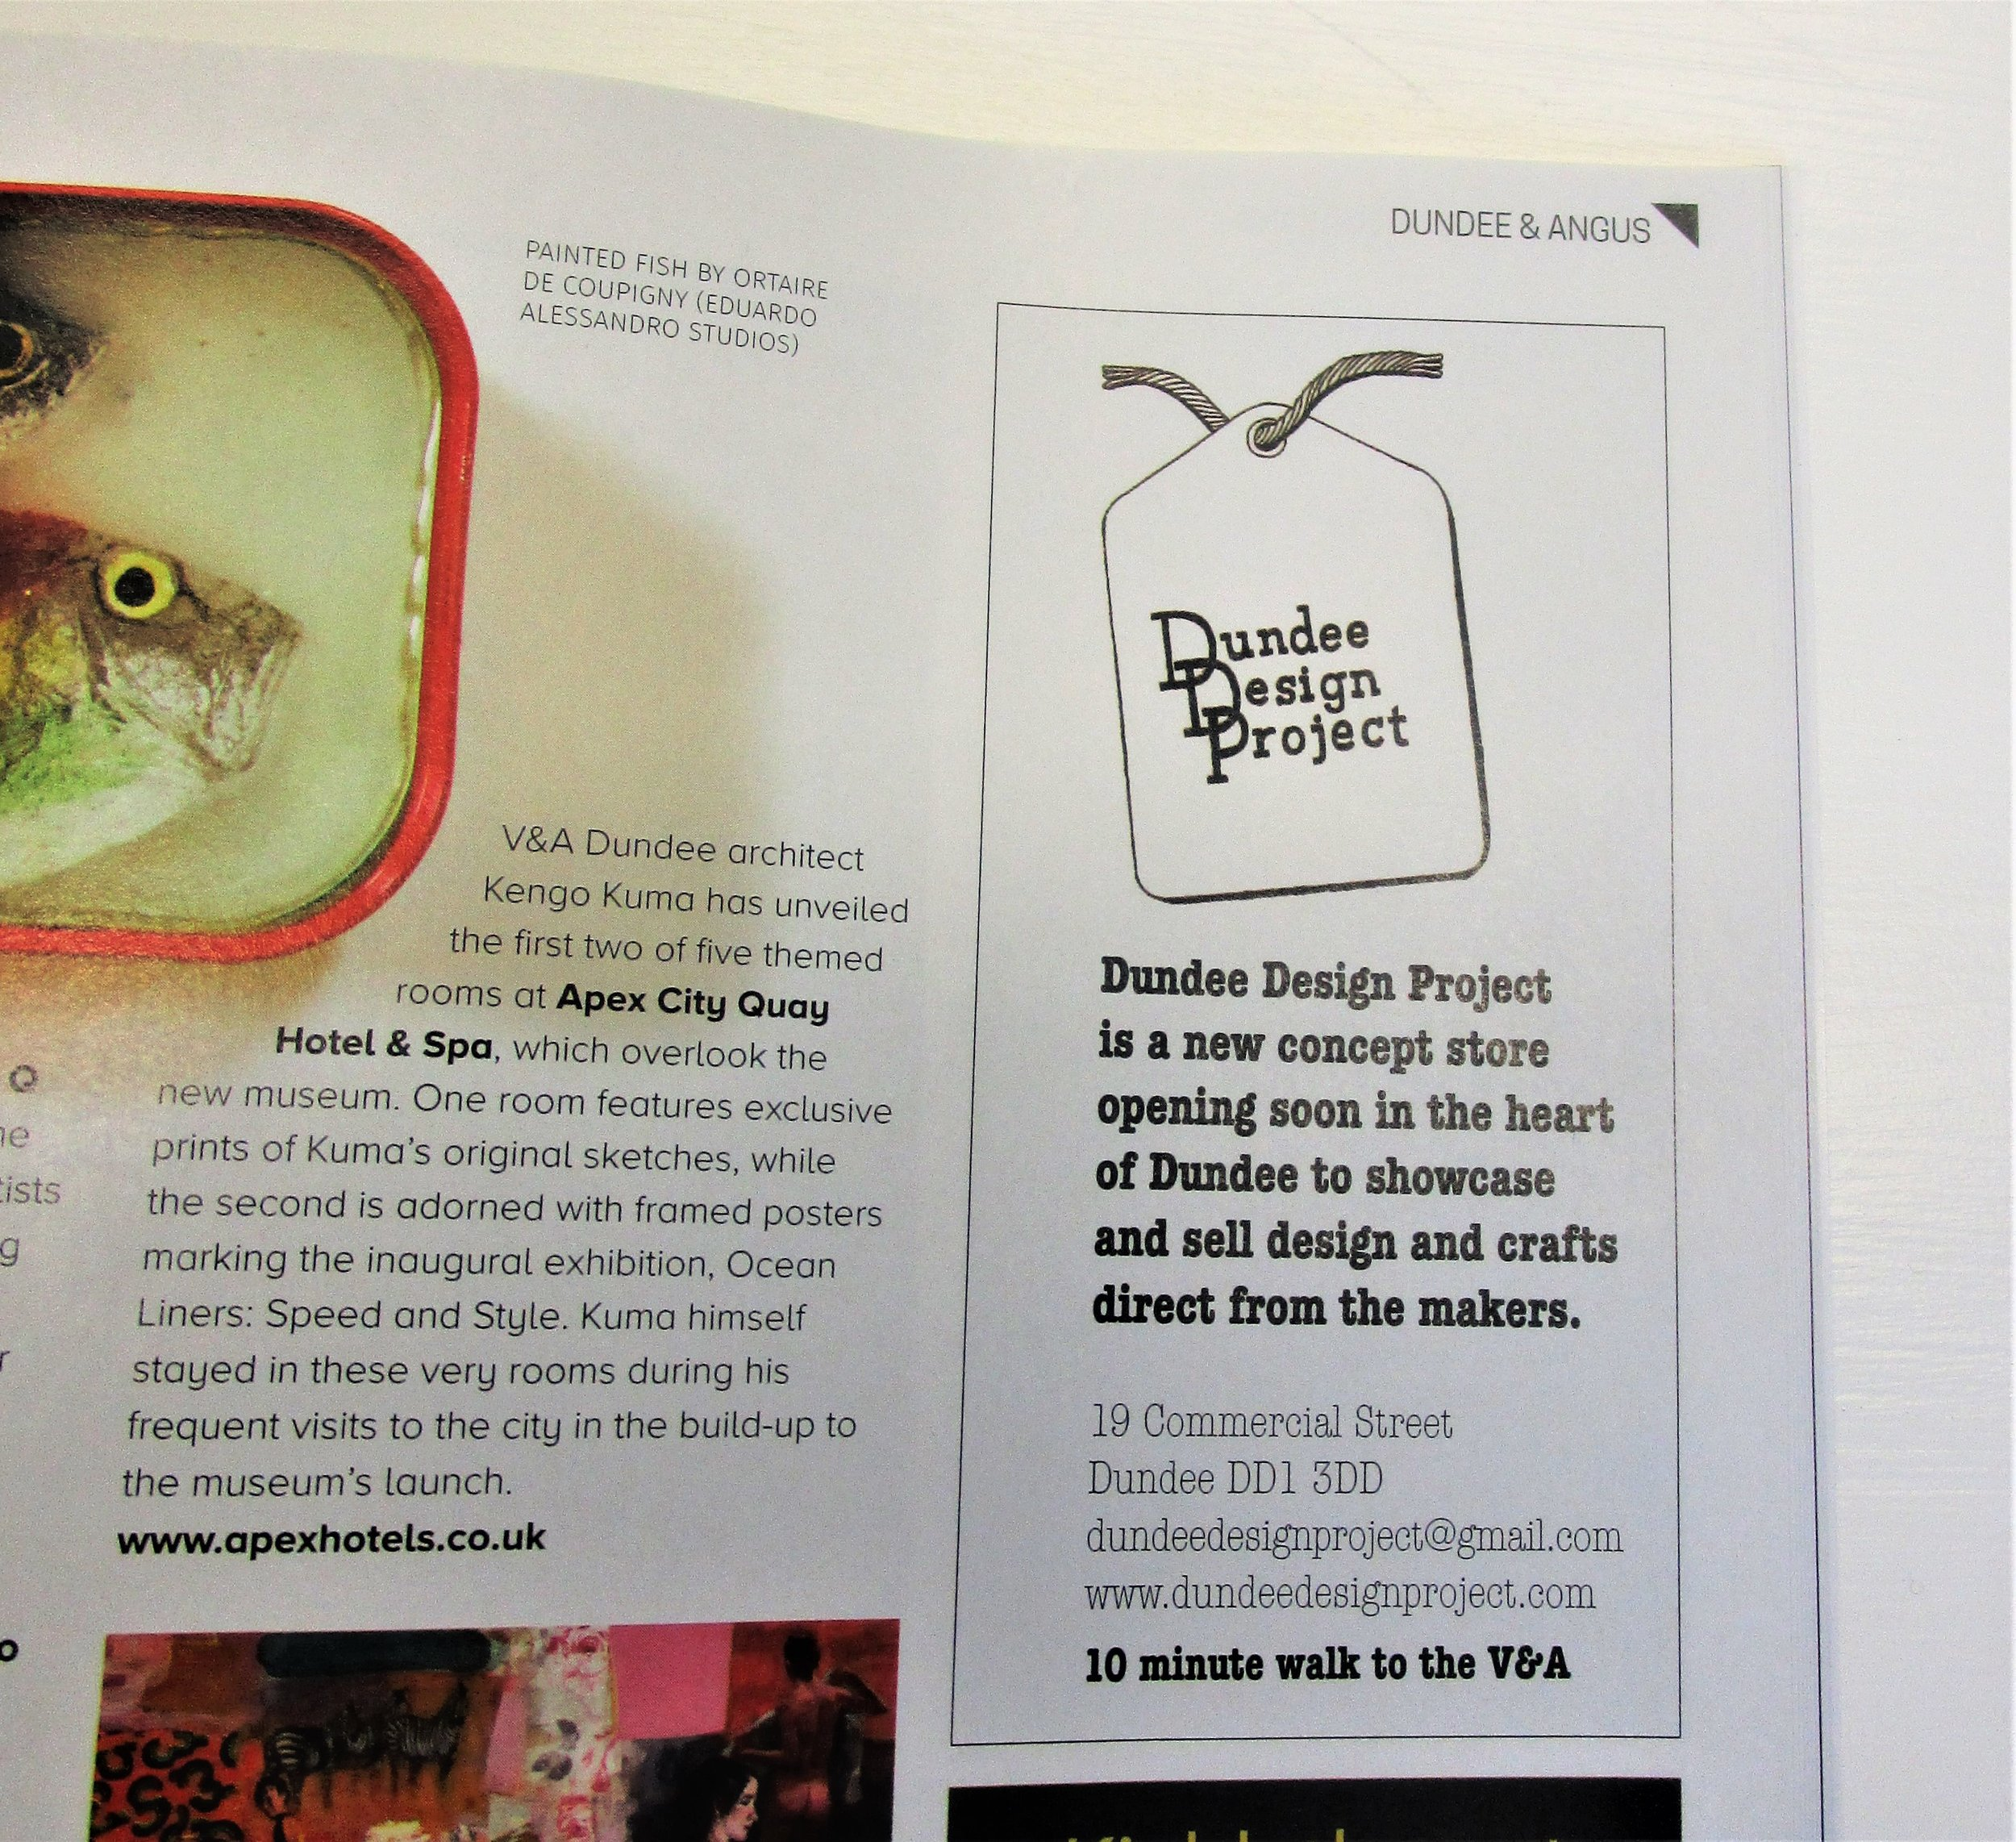 Then our latest advertisement in the October/November issue of art mag.